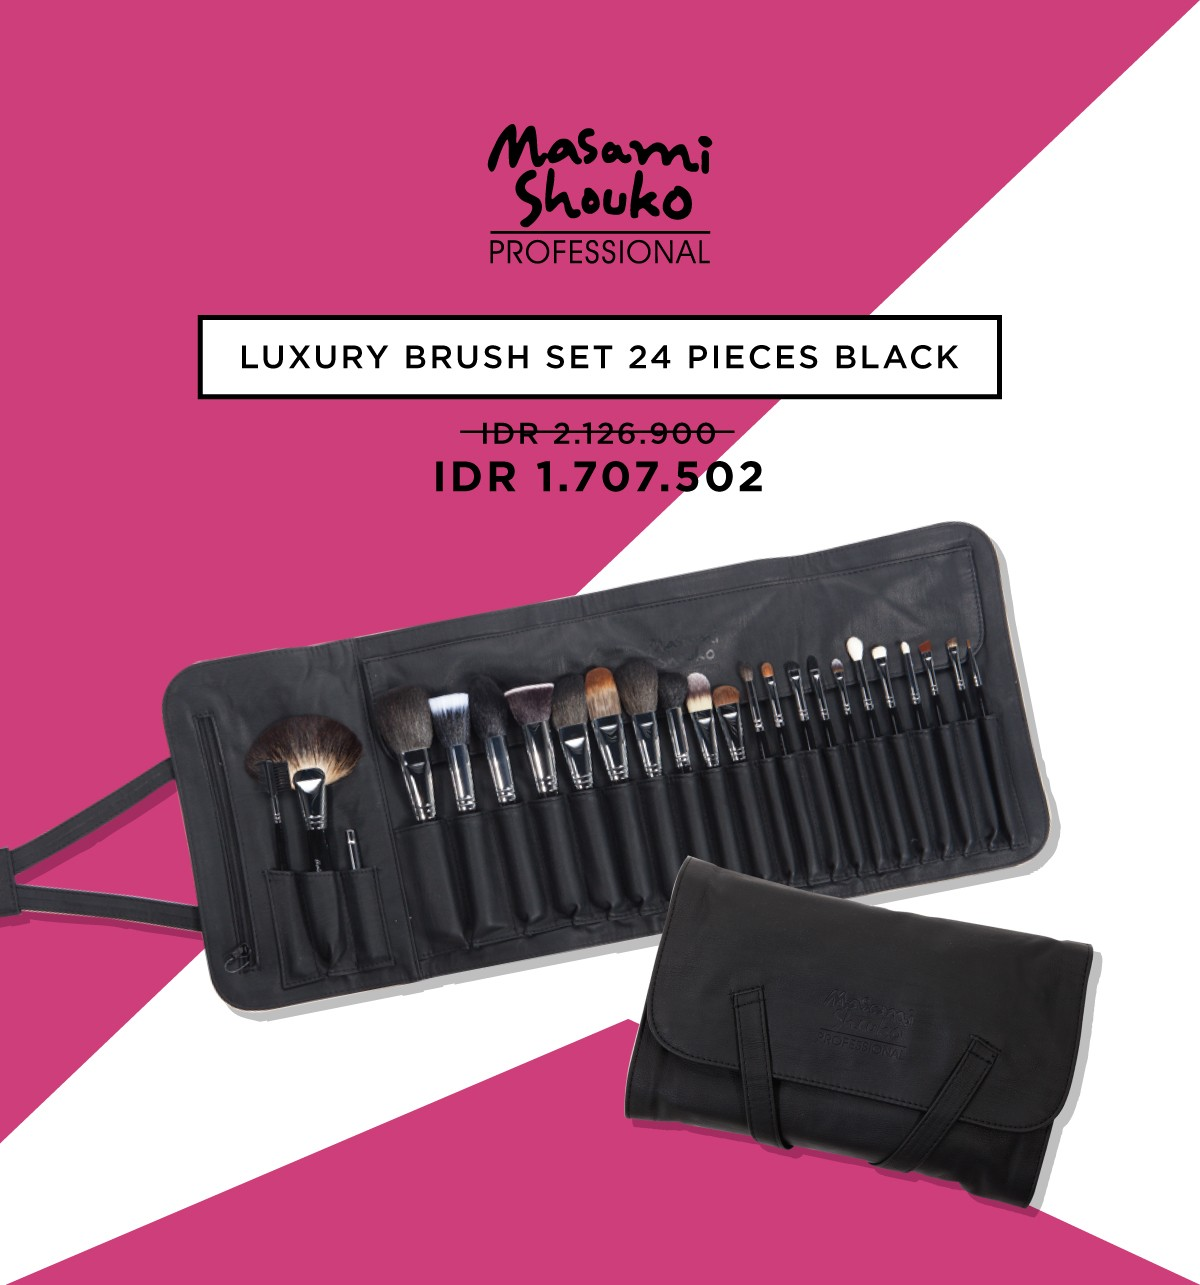 Masami Shouko Professional Brush Set